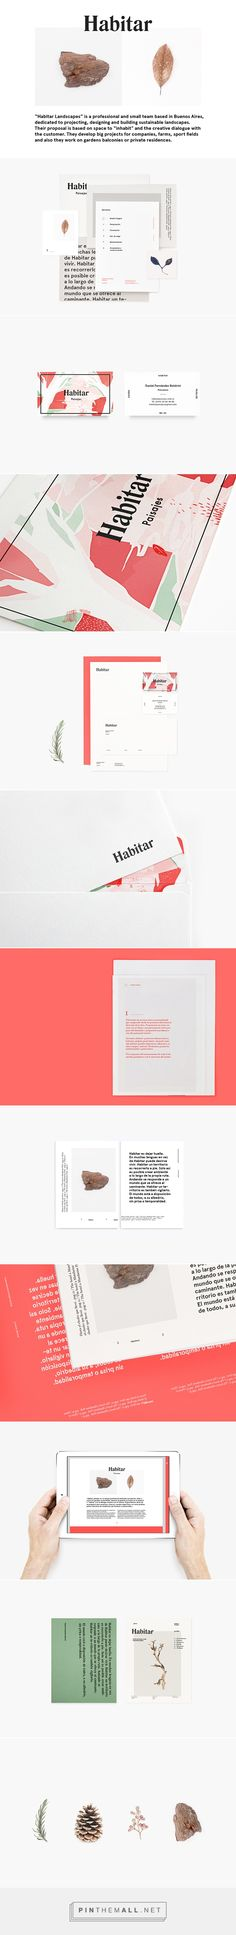 Habitar on Behance. - a grouped images picture Habitar on Behance Brand Identity Design, Stationery Design, Corporate Design, Graphic Design Typography, Branding Design, Corporate Branding, Self Branding, Branding Agency, Food Branding